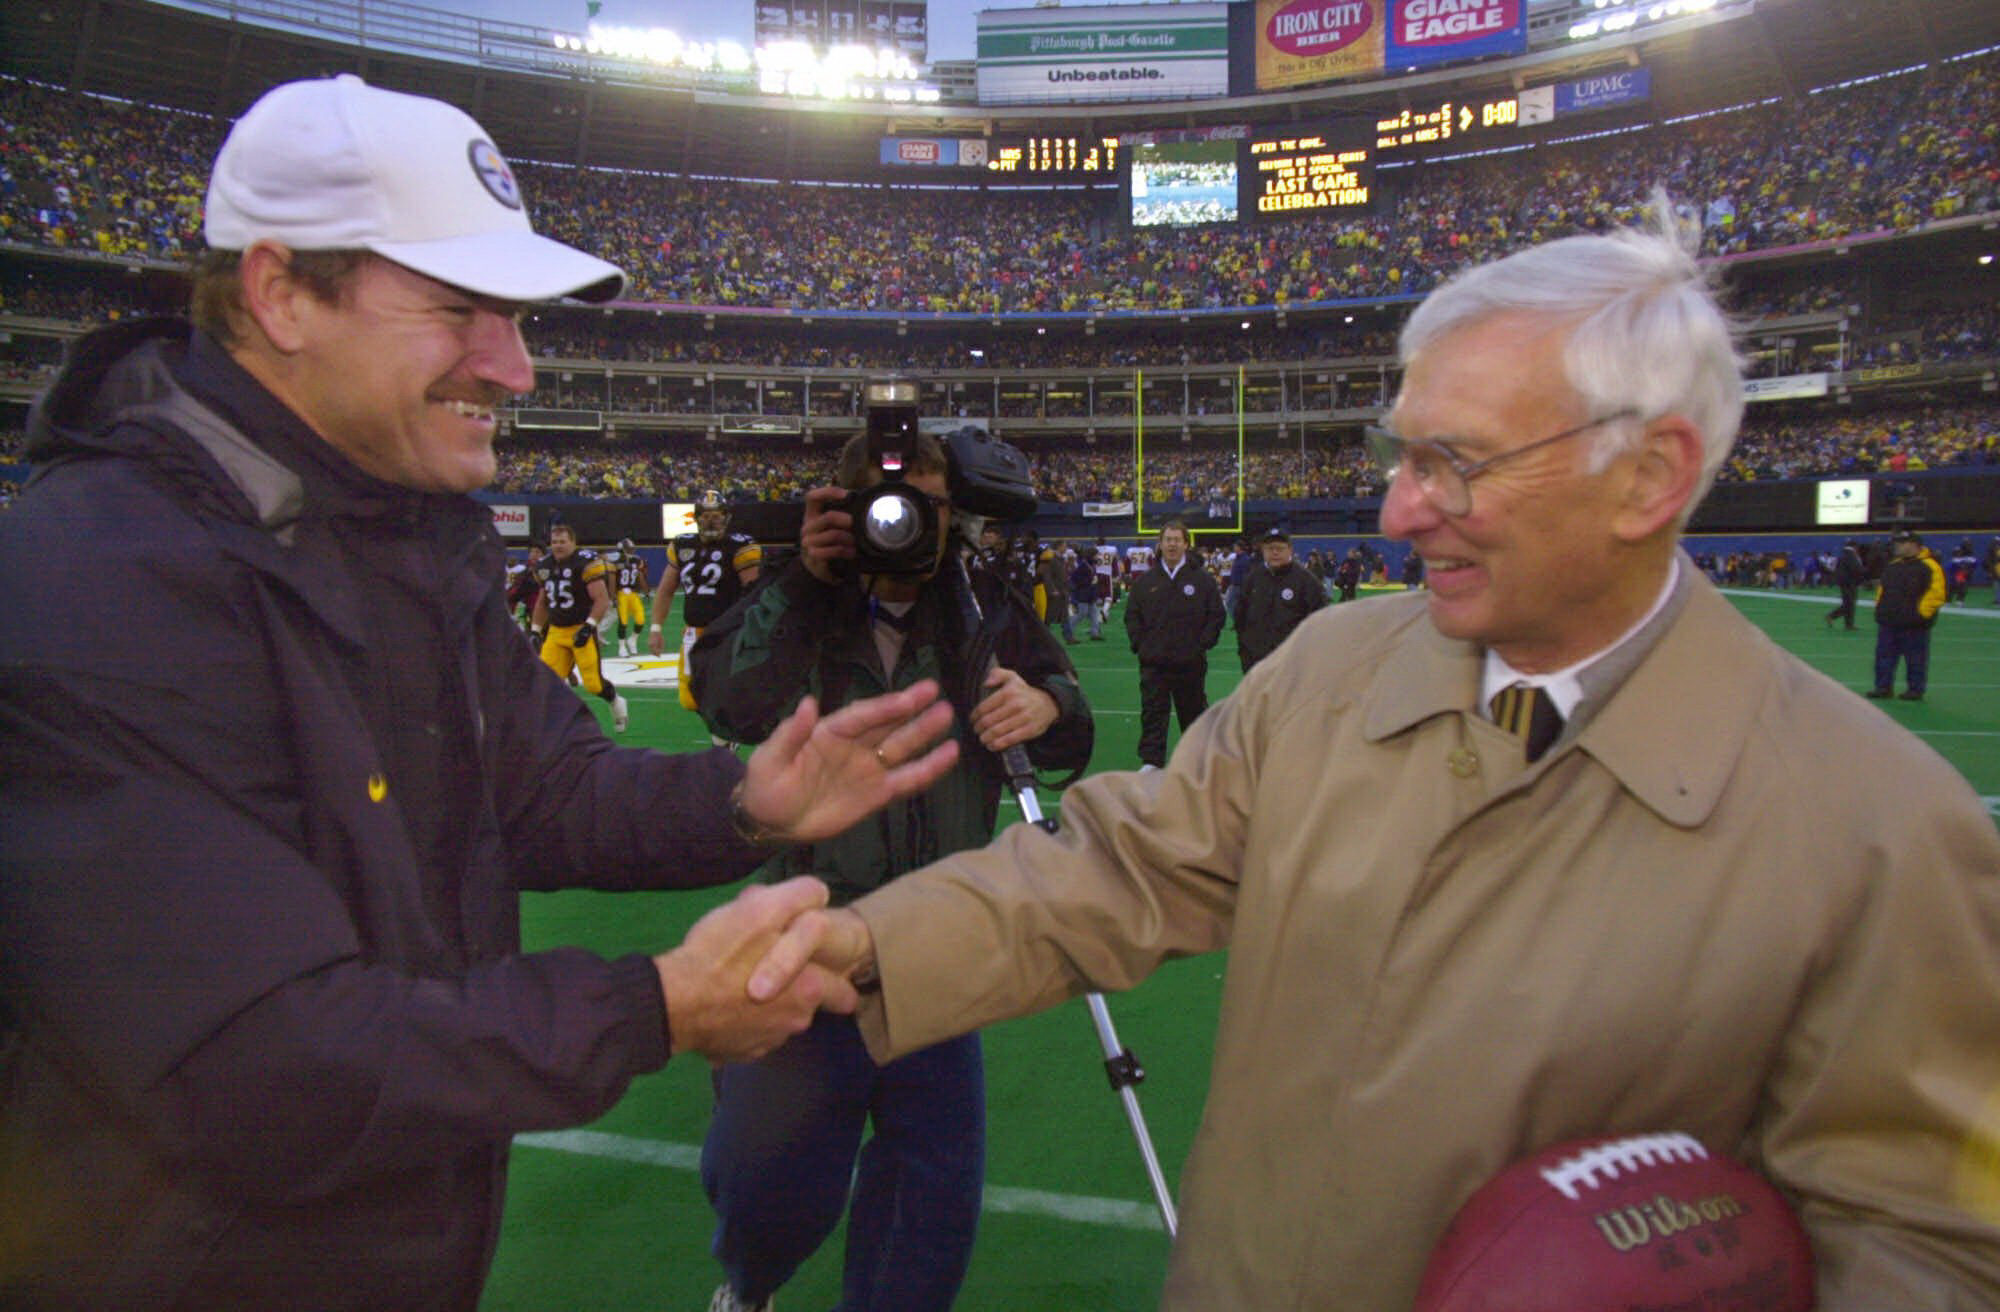 Then-Steelers coach Bill Cowher, left, congratulates Steelers owner Dan Rooney after defeating the Washington Redskins 24-3 in the final game at Three Rivers Stadium on Dec. 16, 2000. (Associated Press)